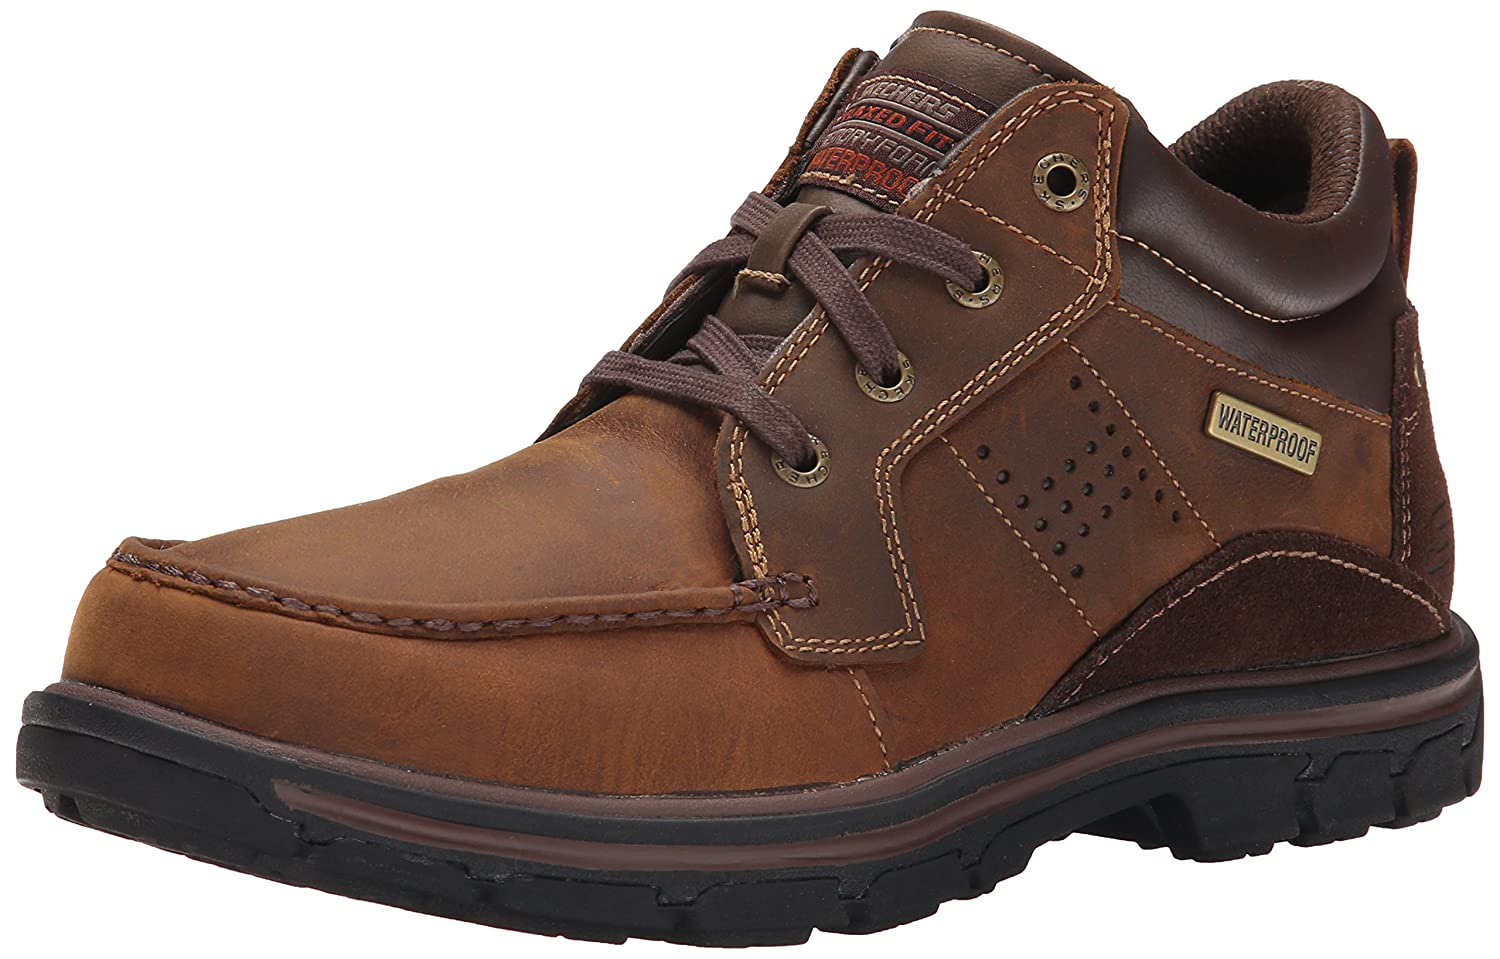 Skechers USA Men's Segment Melego Leather Chukka Waterproof Stiefel